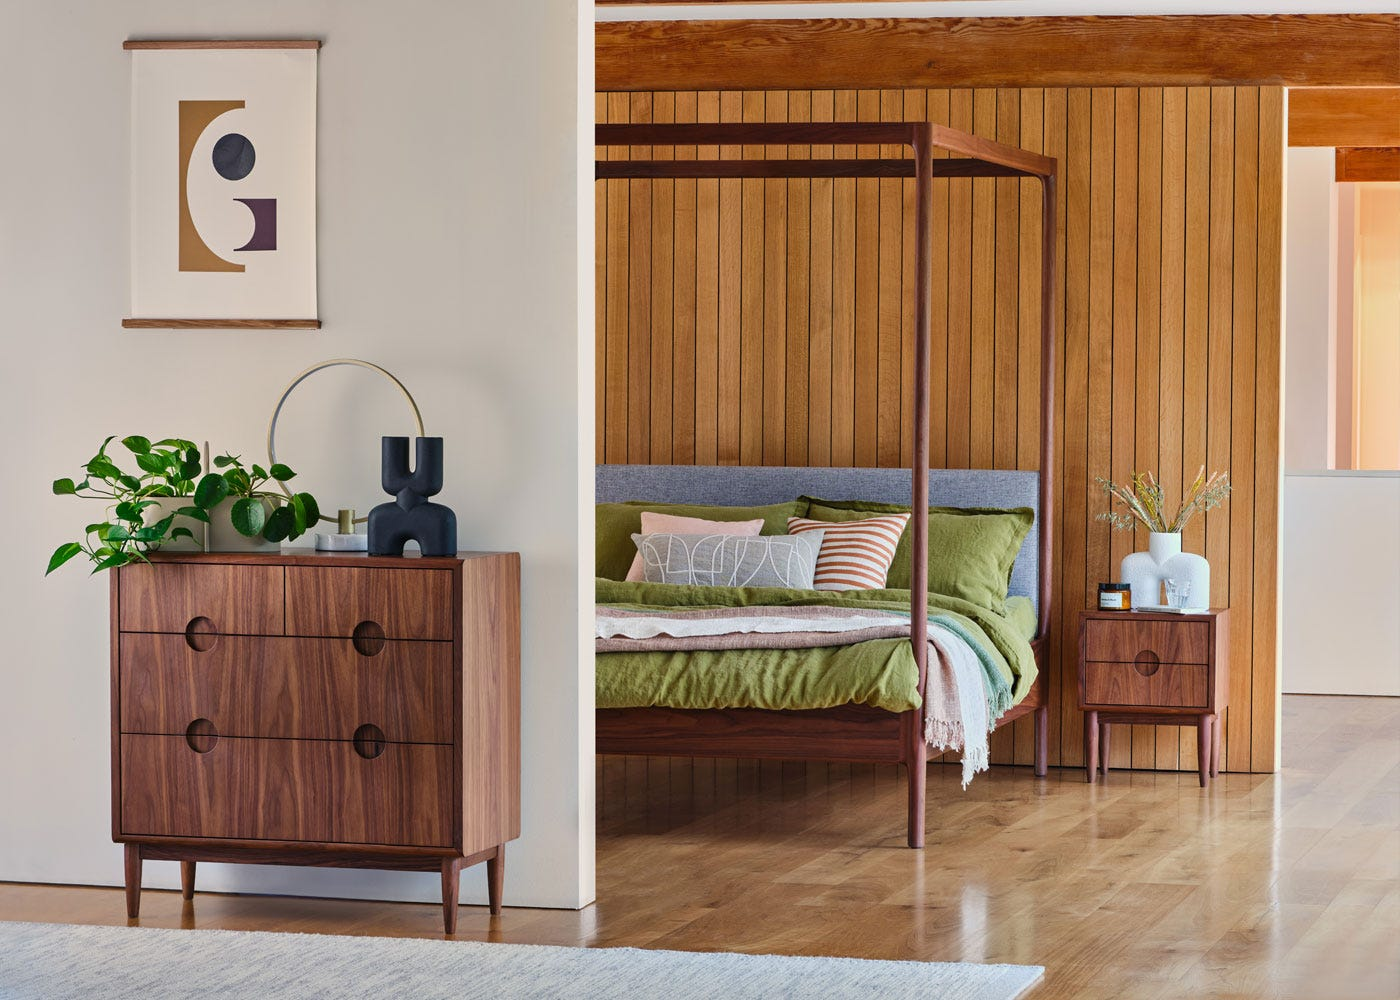 As shown: Circa LED table lamp satin gold, Marlow bed, Marano chest of drawers.